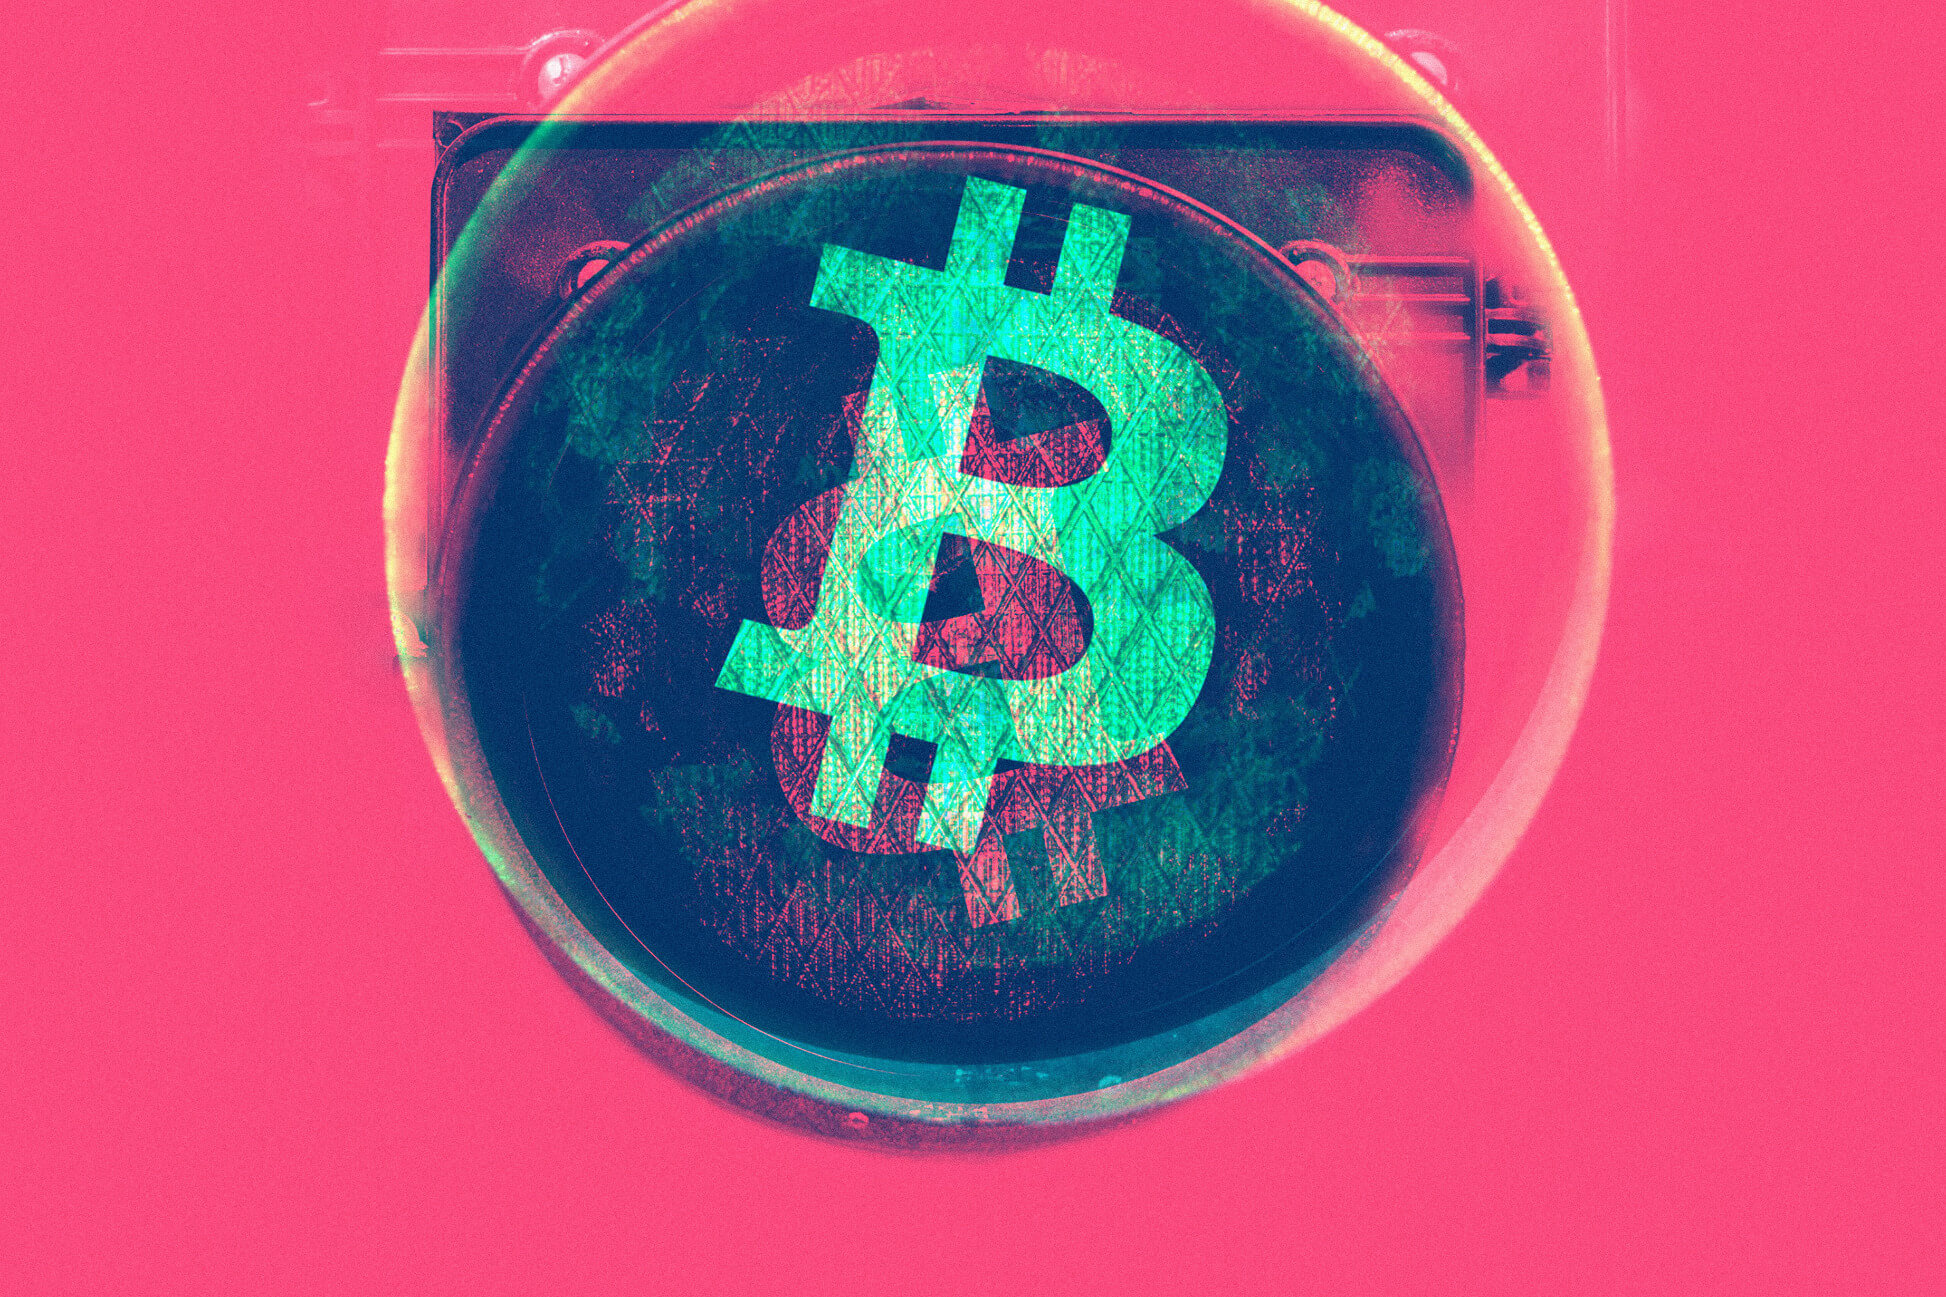 Bitcoin is a 'Ponzi' With Infinite Supply - Skeptics Chime In